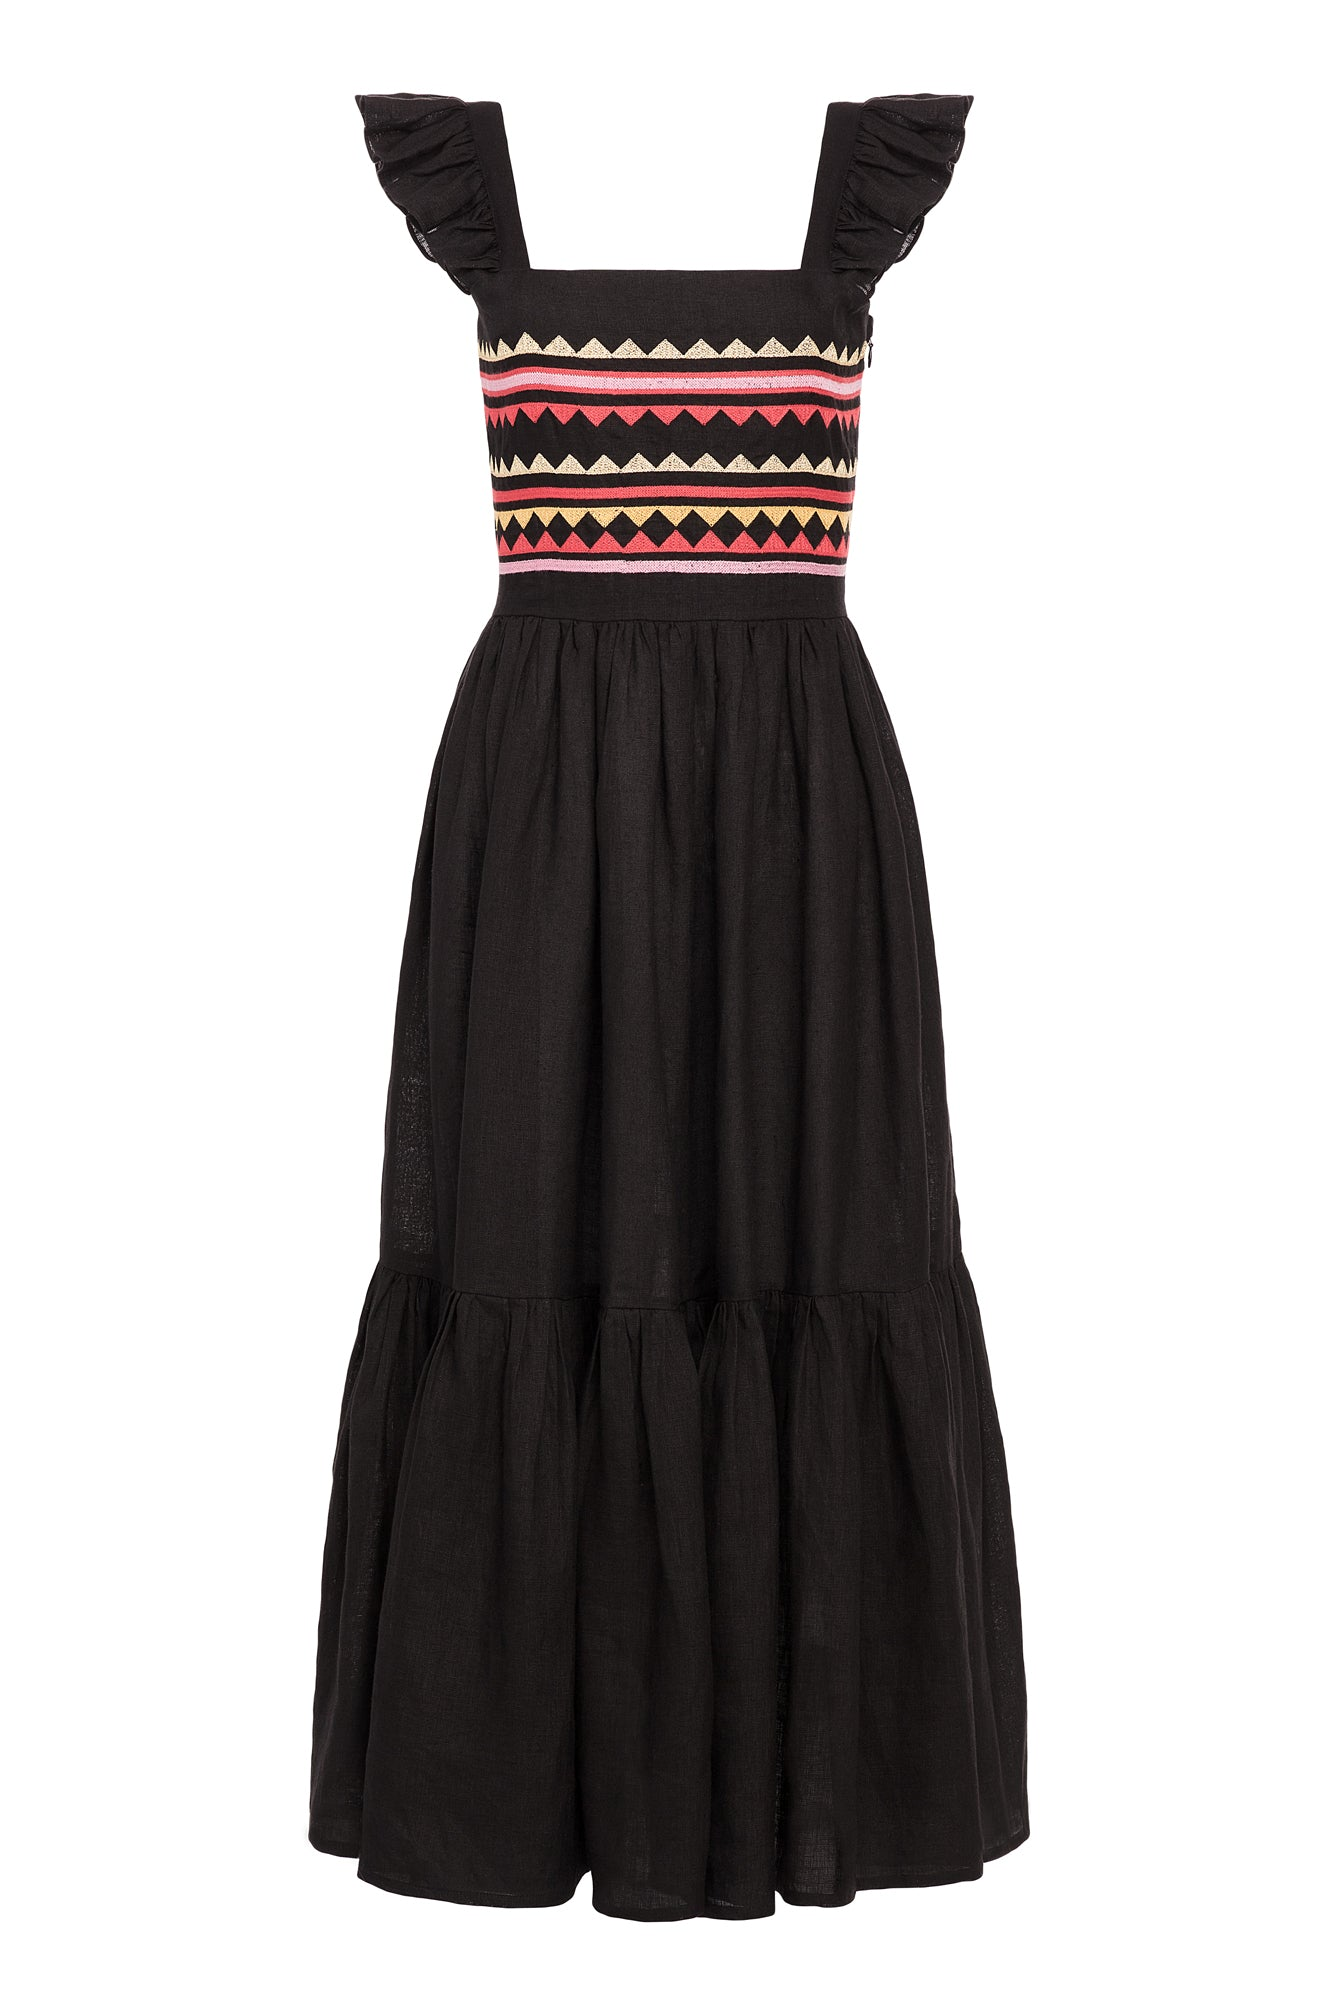 Carolina K Kuna Dress Black Triangle